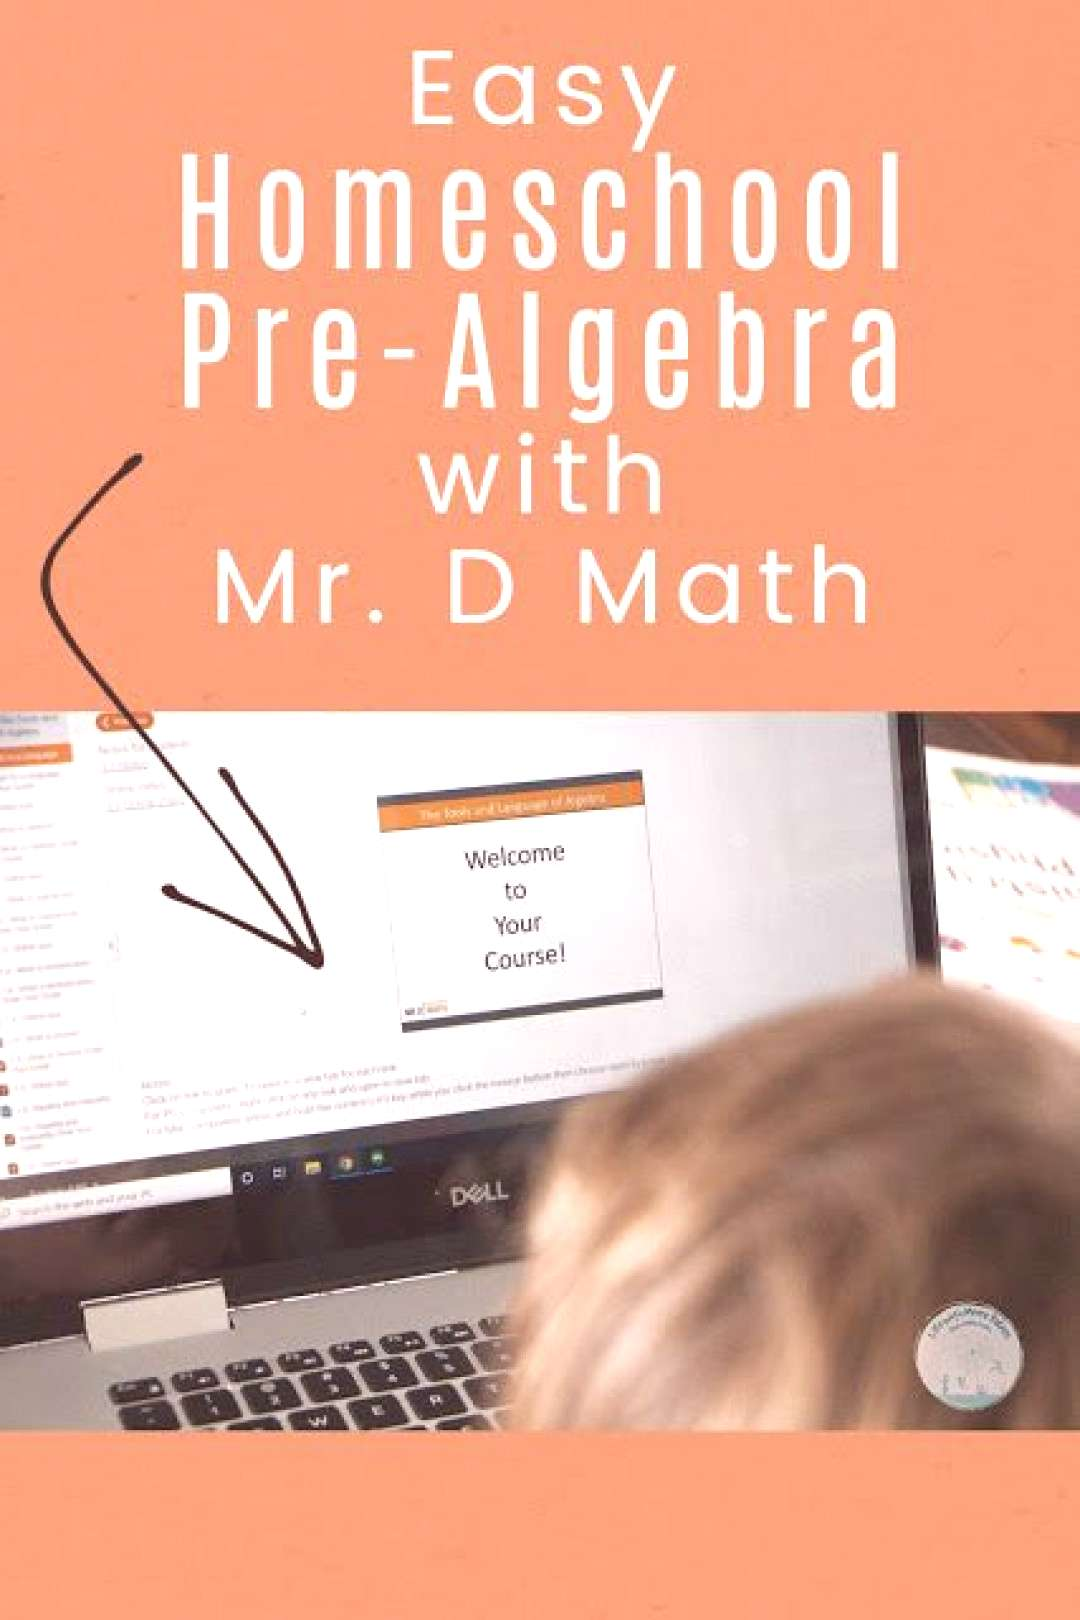 Homeschool Pre-Algebra Made Easy with Mr. D Math Most kids would enjoy the fun, stress free atmosph